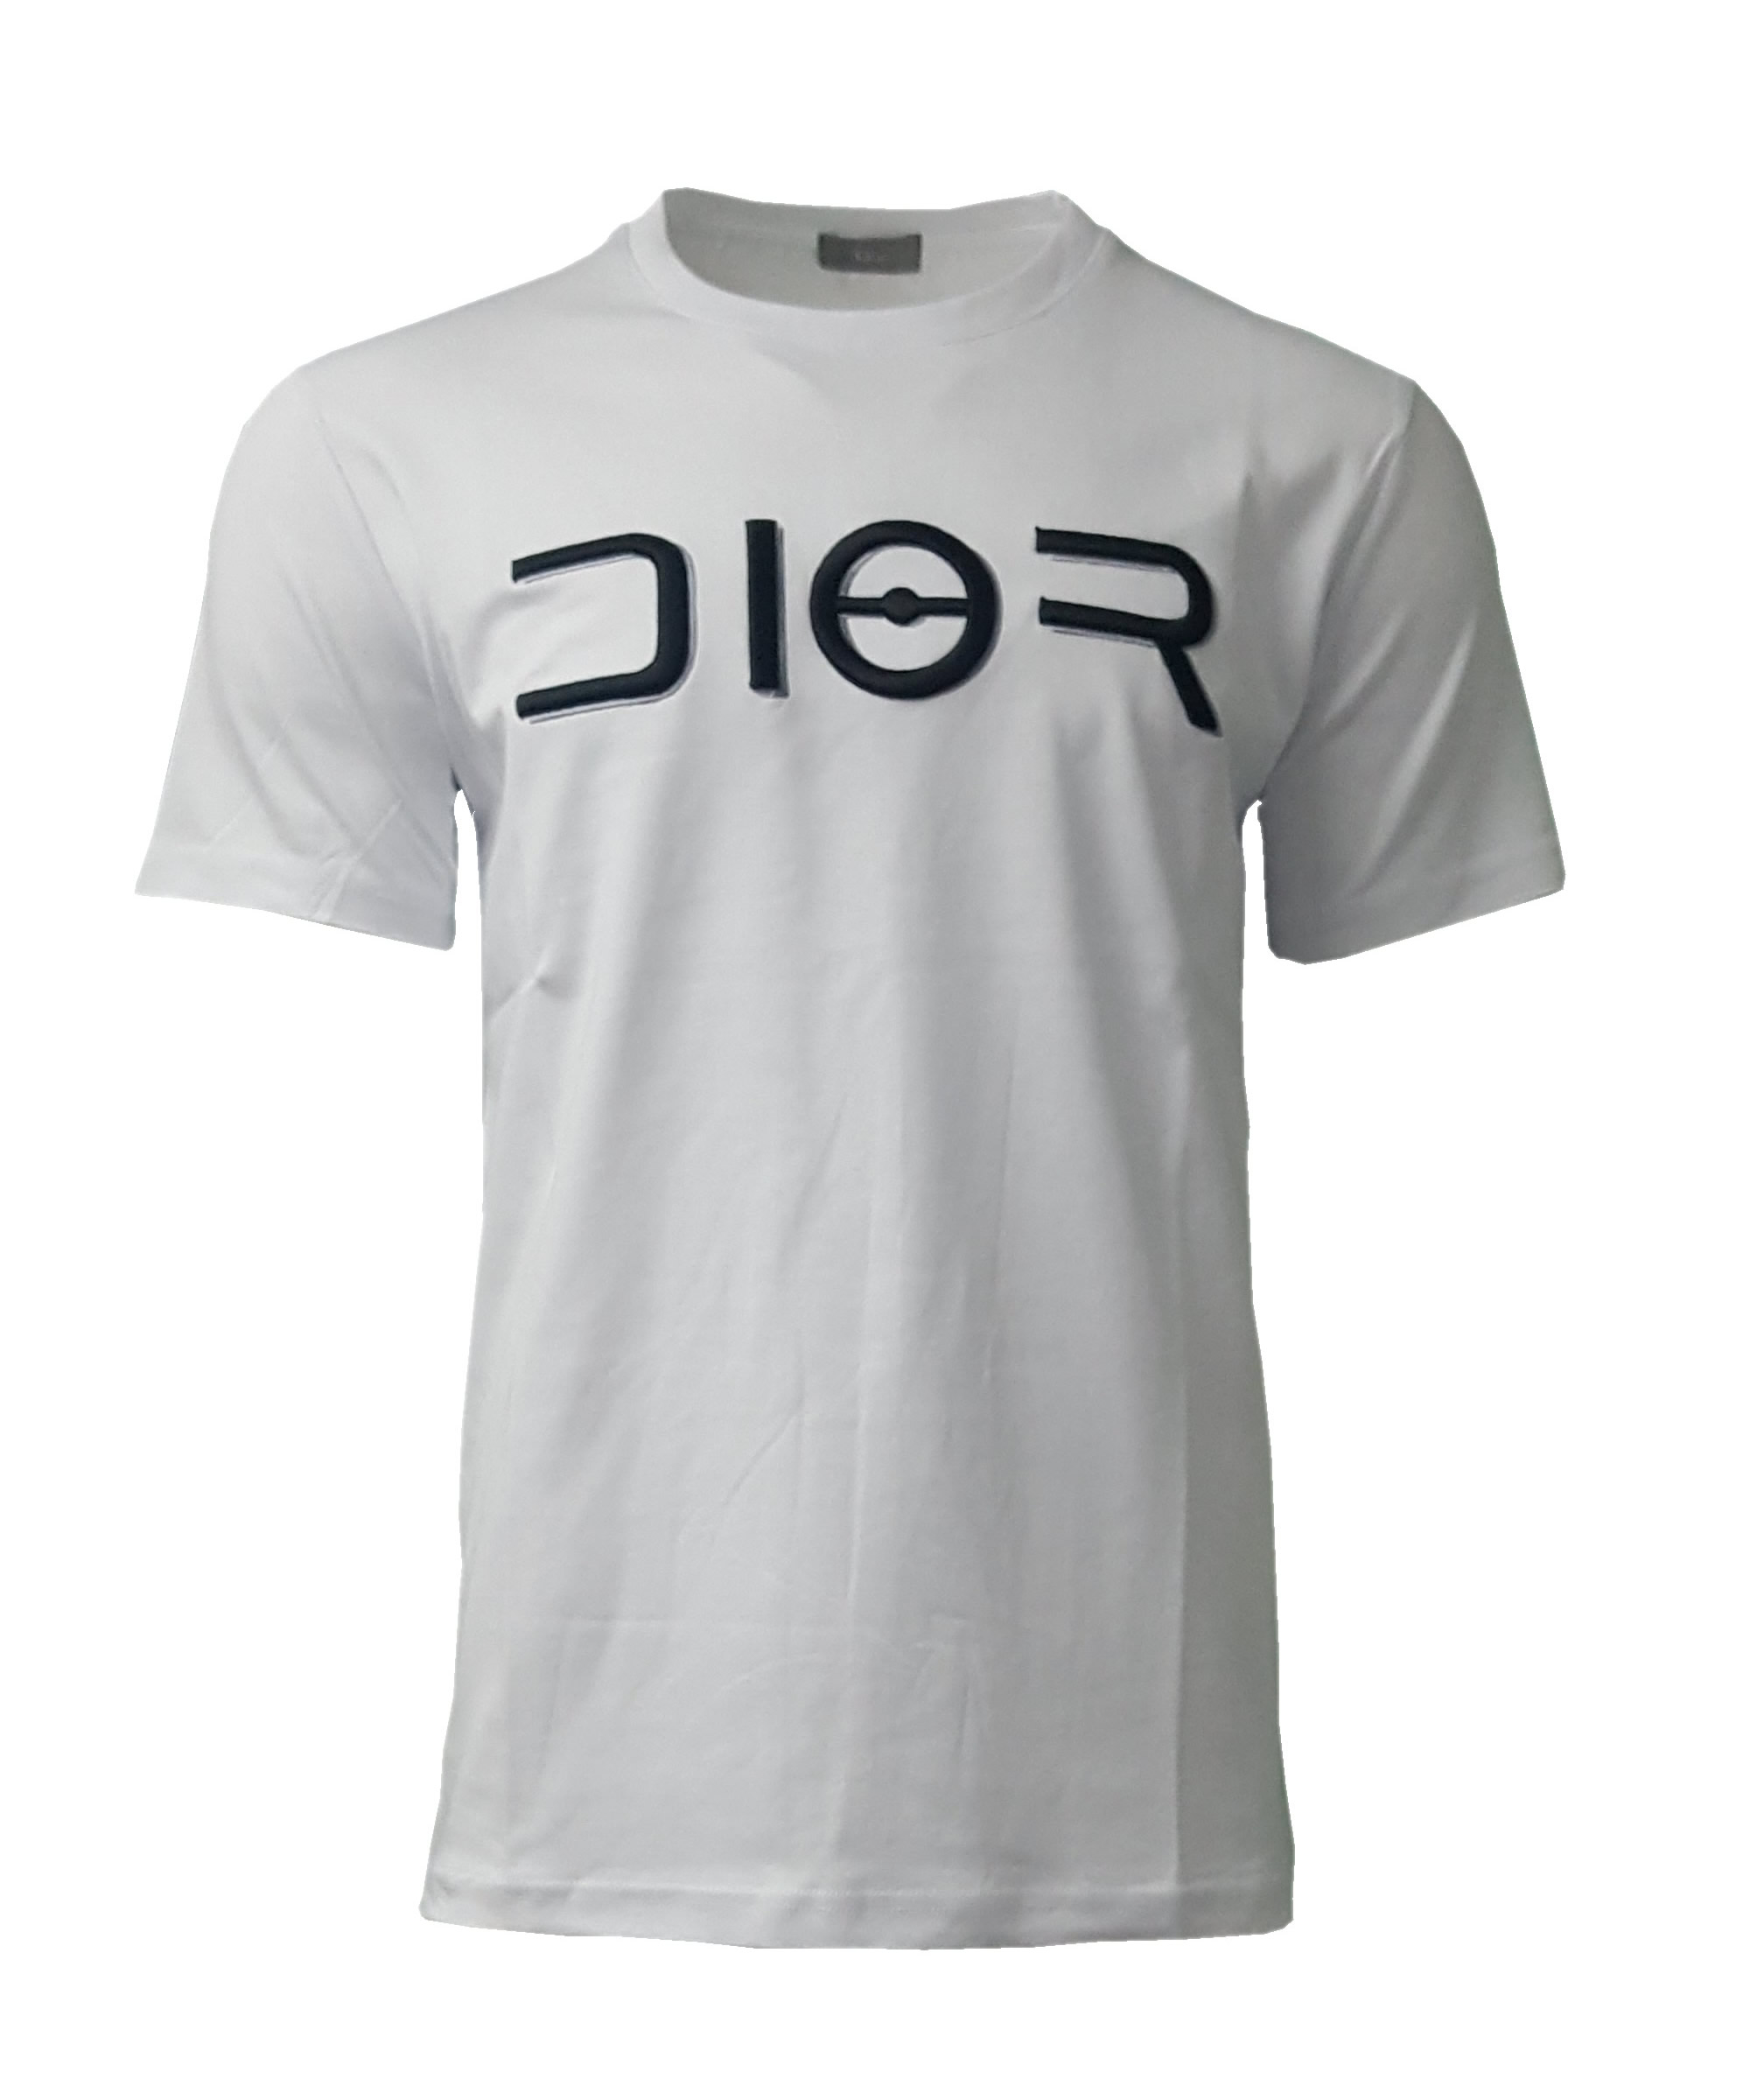 f3cef196aff Dior Short Sleeve Men's Crew T Shirt with Embroidered Bee in Black ...